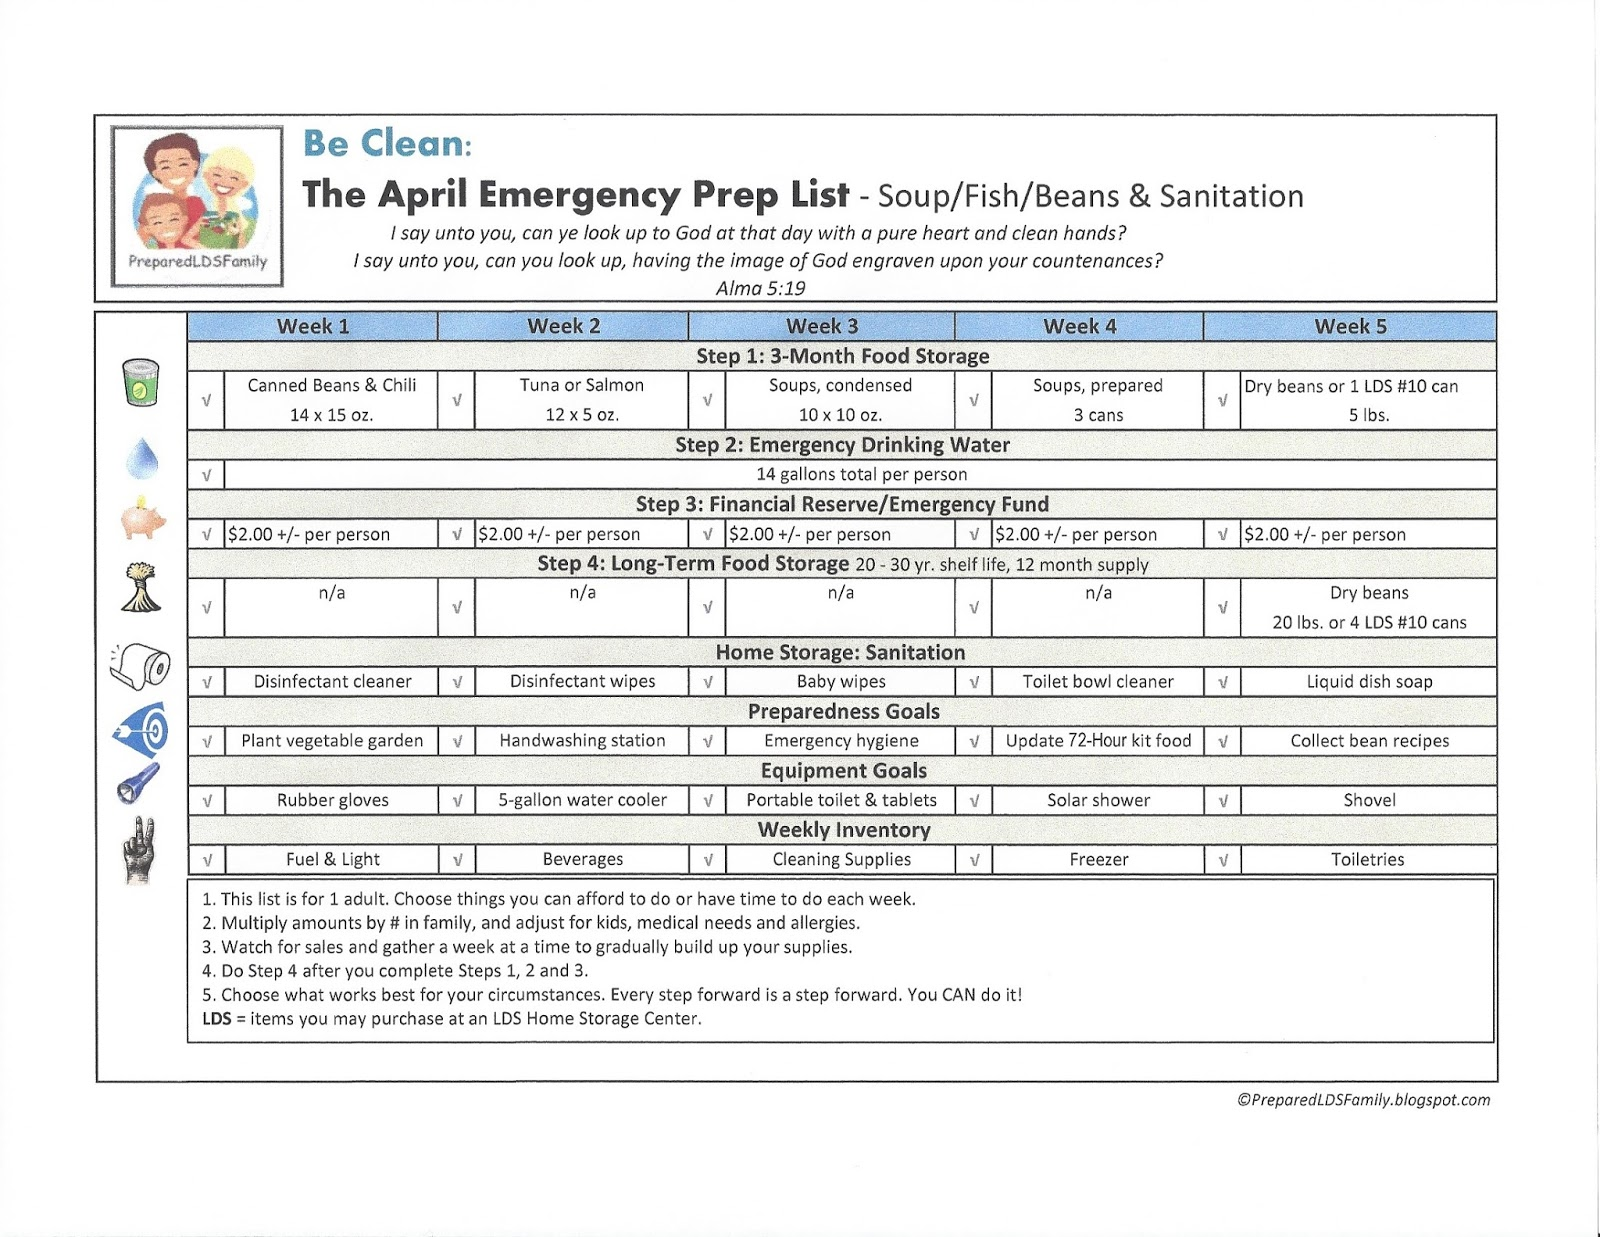 Prepared lds family 12 monthly emergency prep lists be clean april soupfishbeans sanitation go here for printable april list click here for the april 2016 emergency prep calendar forumfinder